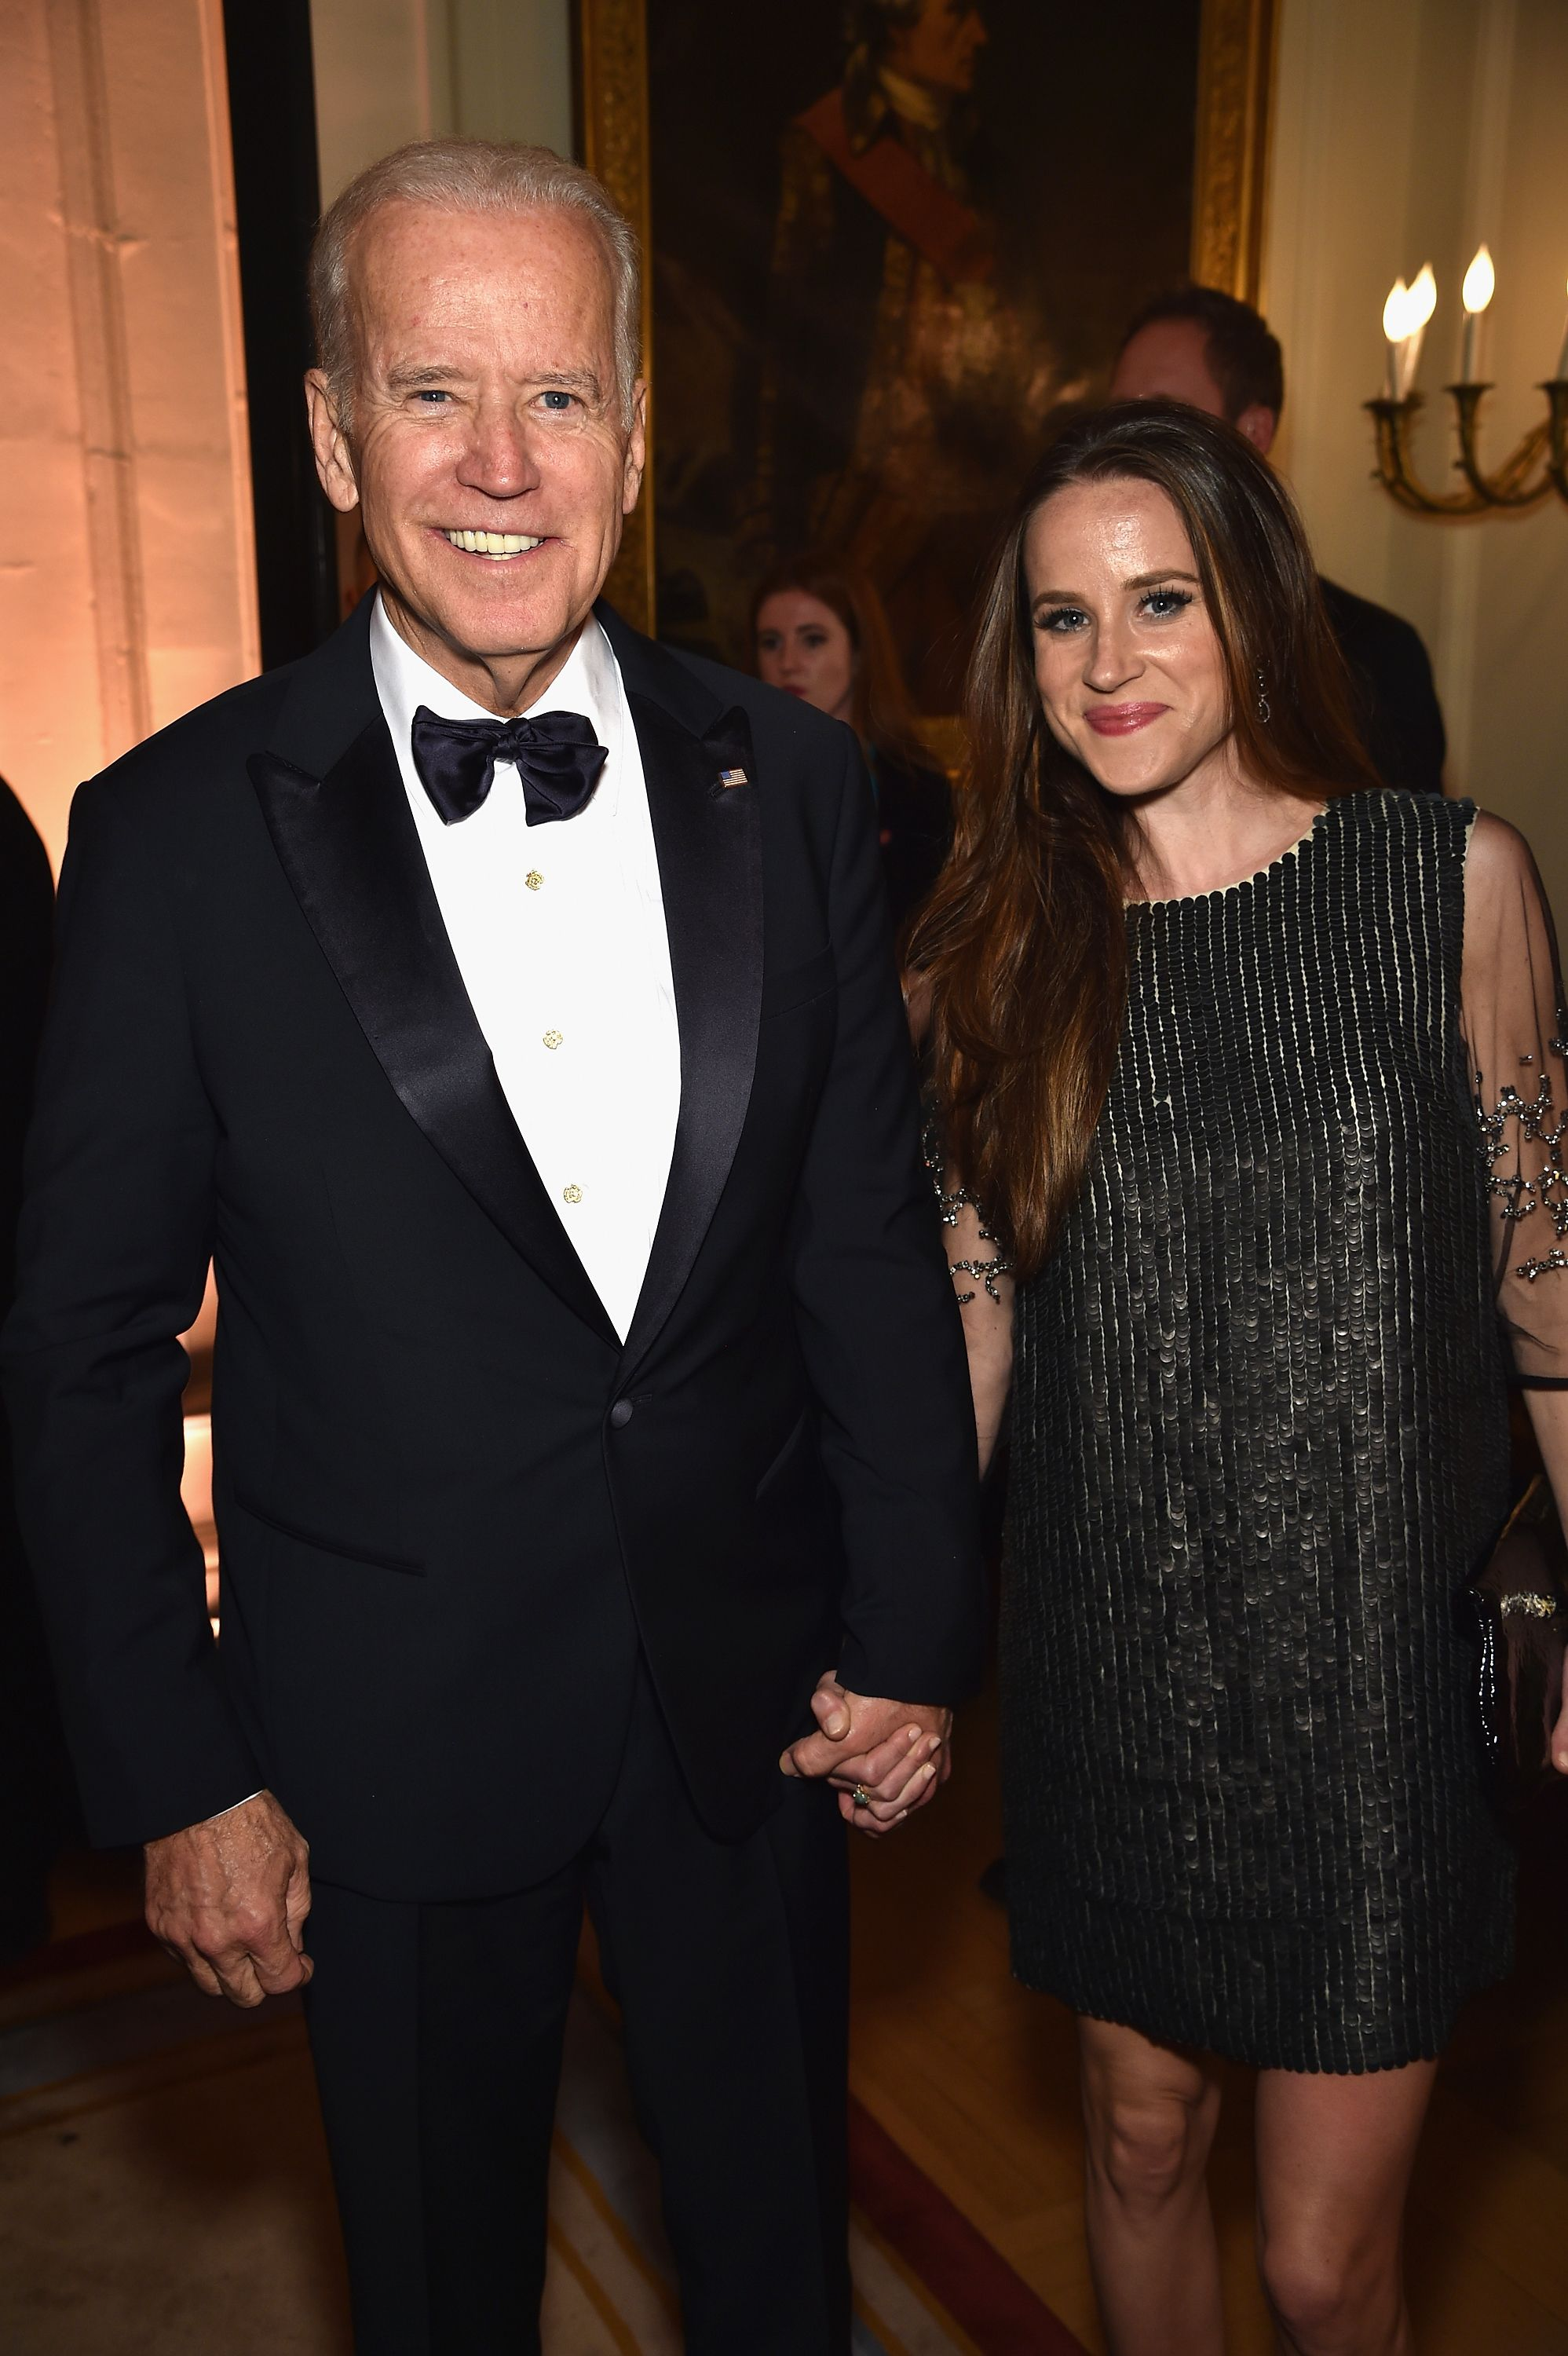 Joe Biden's Daughter Ashley Biden Opens Up About Her Dad Ahead of Inauguration Day